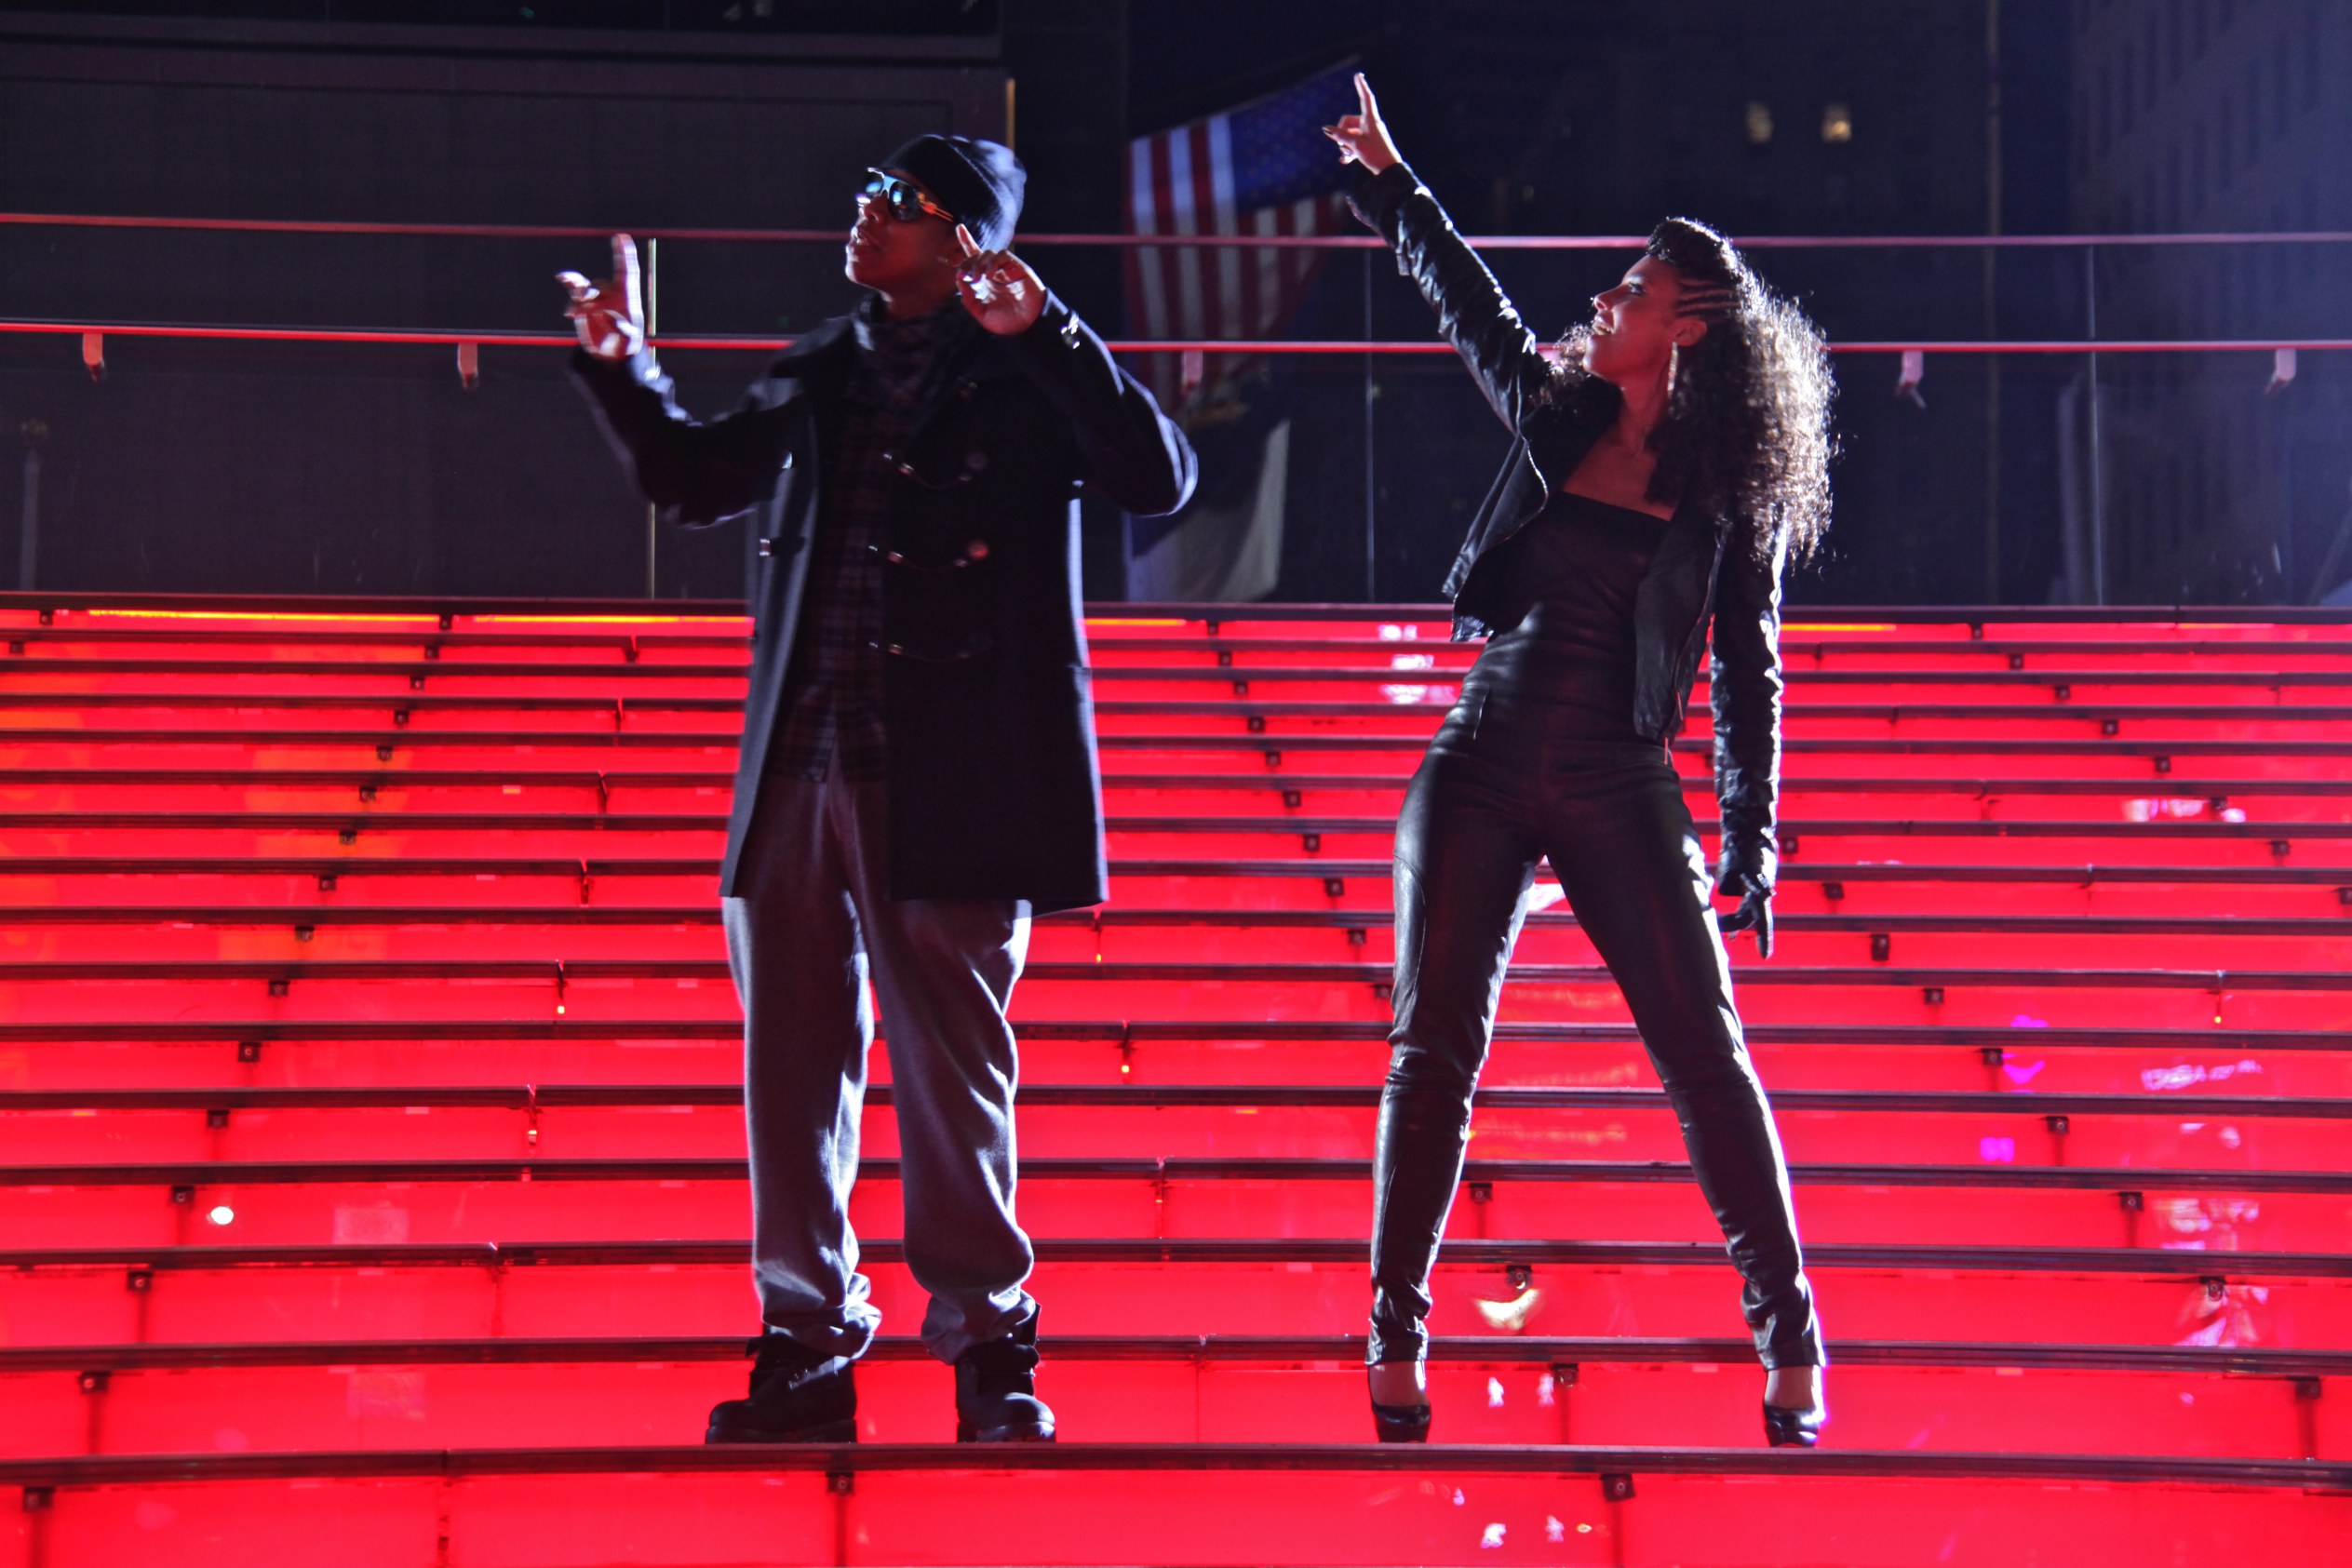 http://ashcan.files.wordpress.com/2009/11/jayz-aliciakeys-empire-state-of-mind-video-shoot-1.jpg